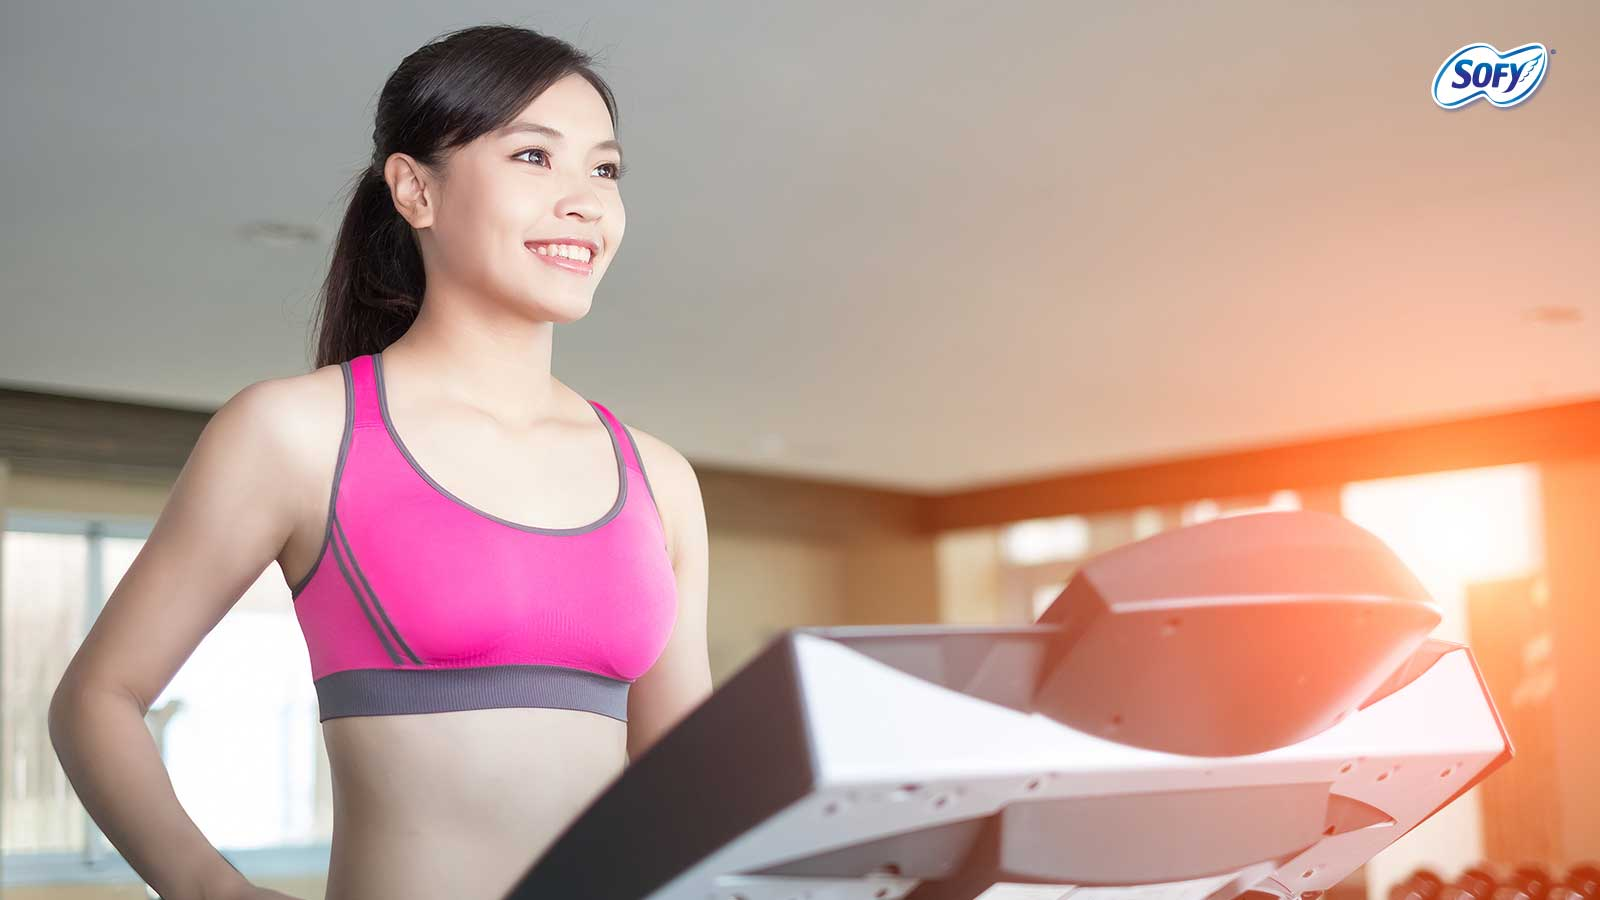 Is exercising during periods safe?